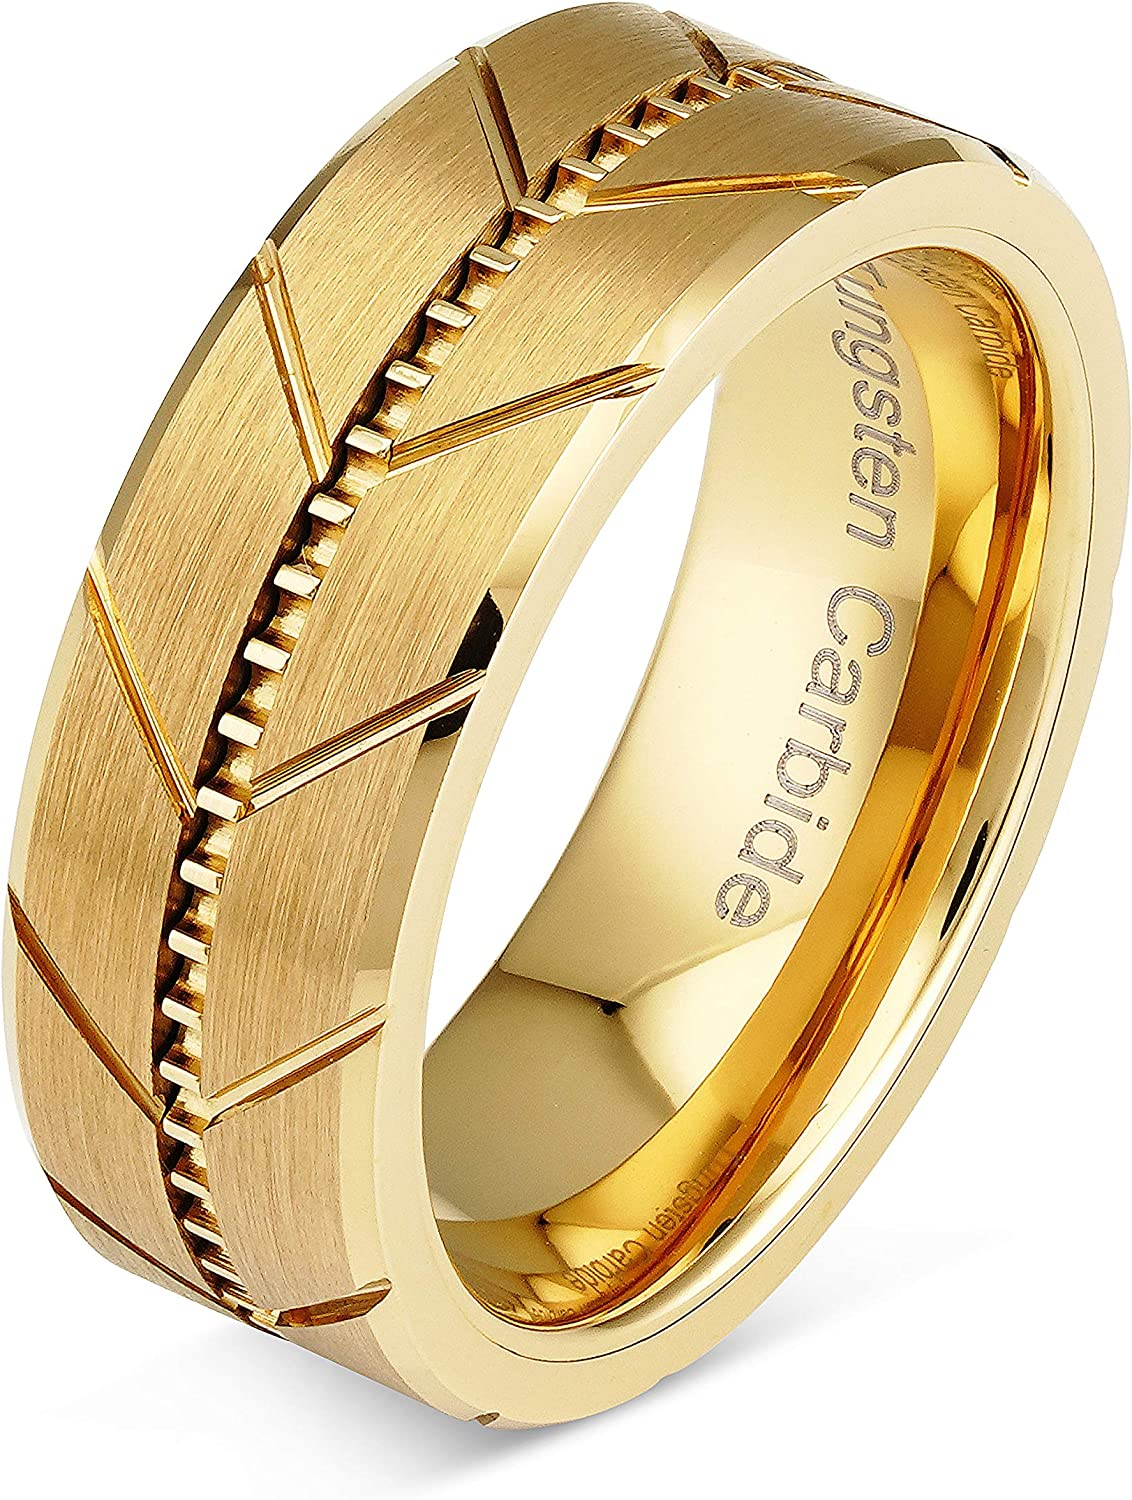 100S JEWELRY Engraved Personlized Tungsten Rings for Men Women Gold Wedding Band Sandblasted Finish Dome Edge Sizes 6-16